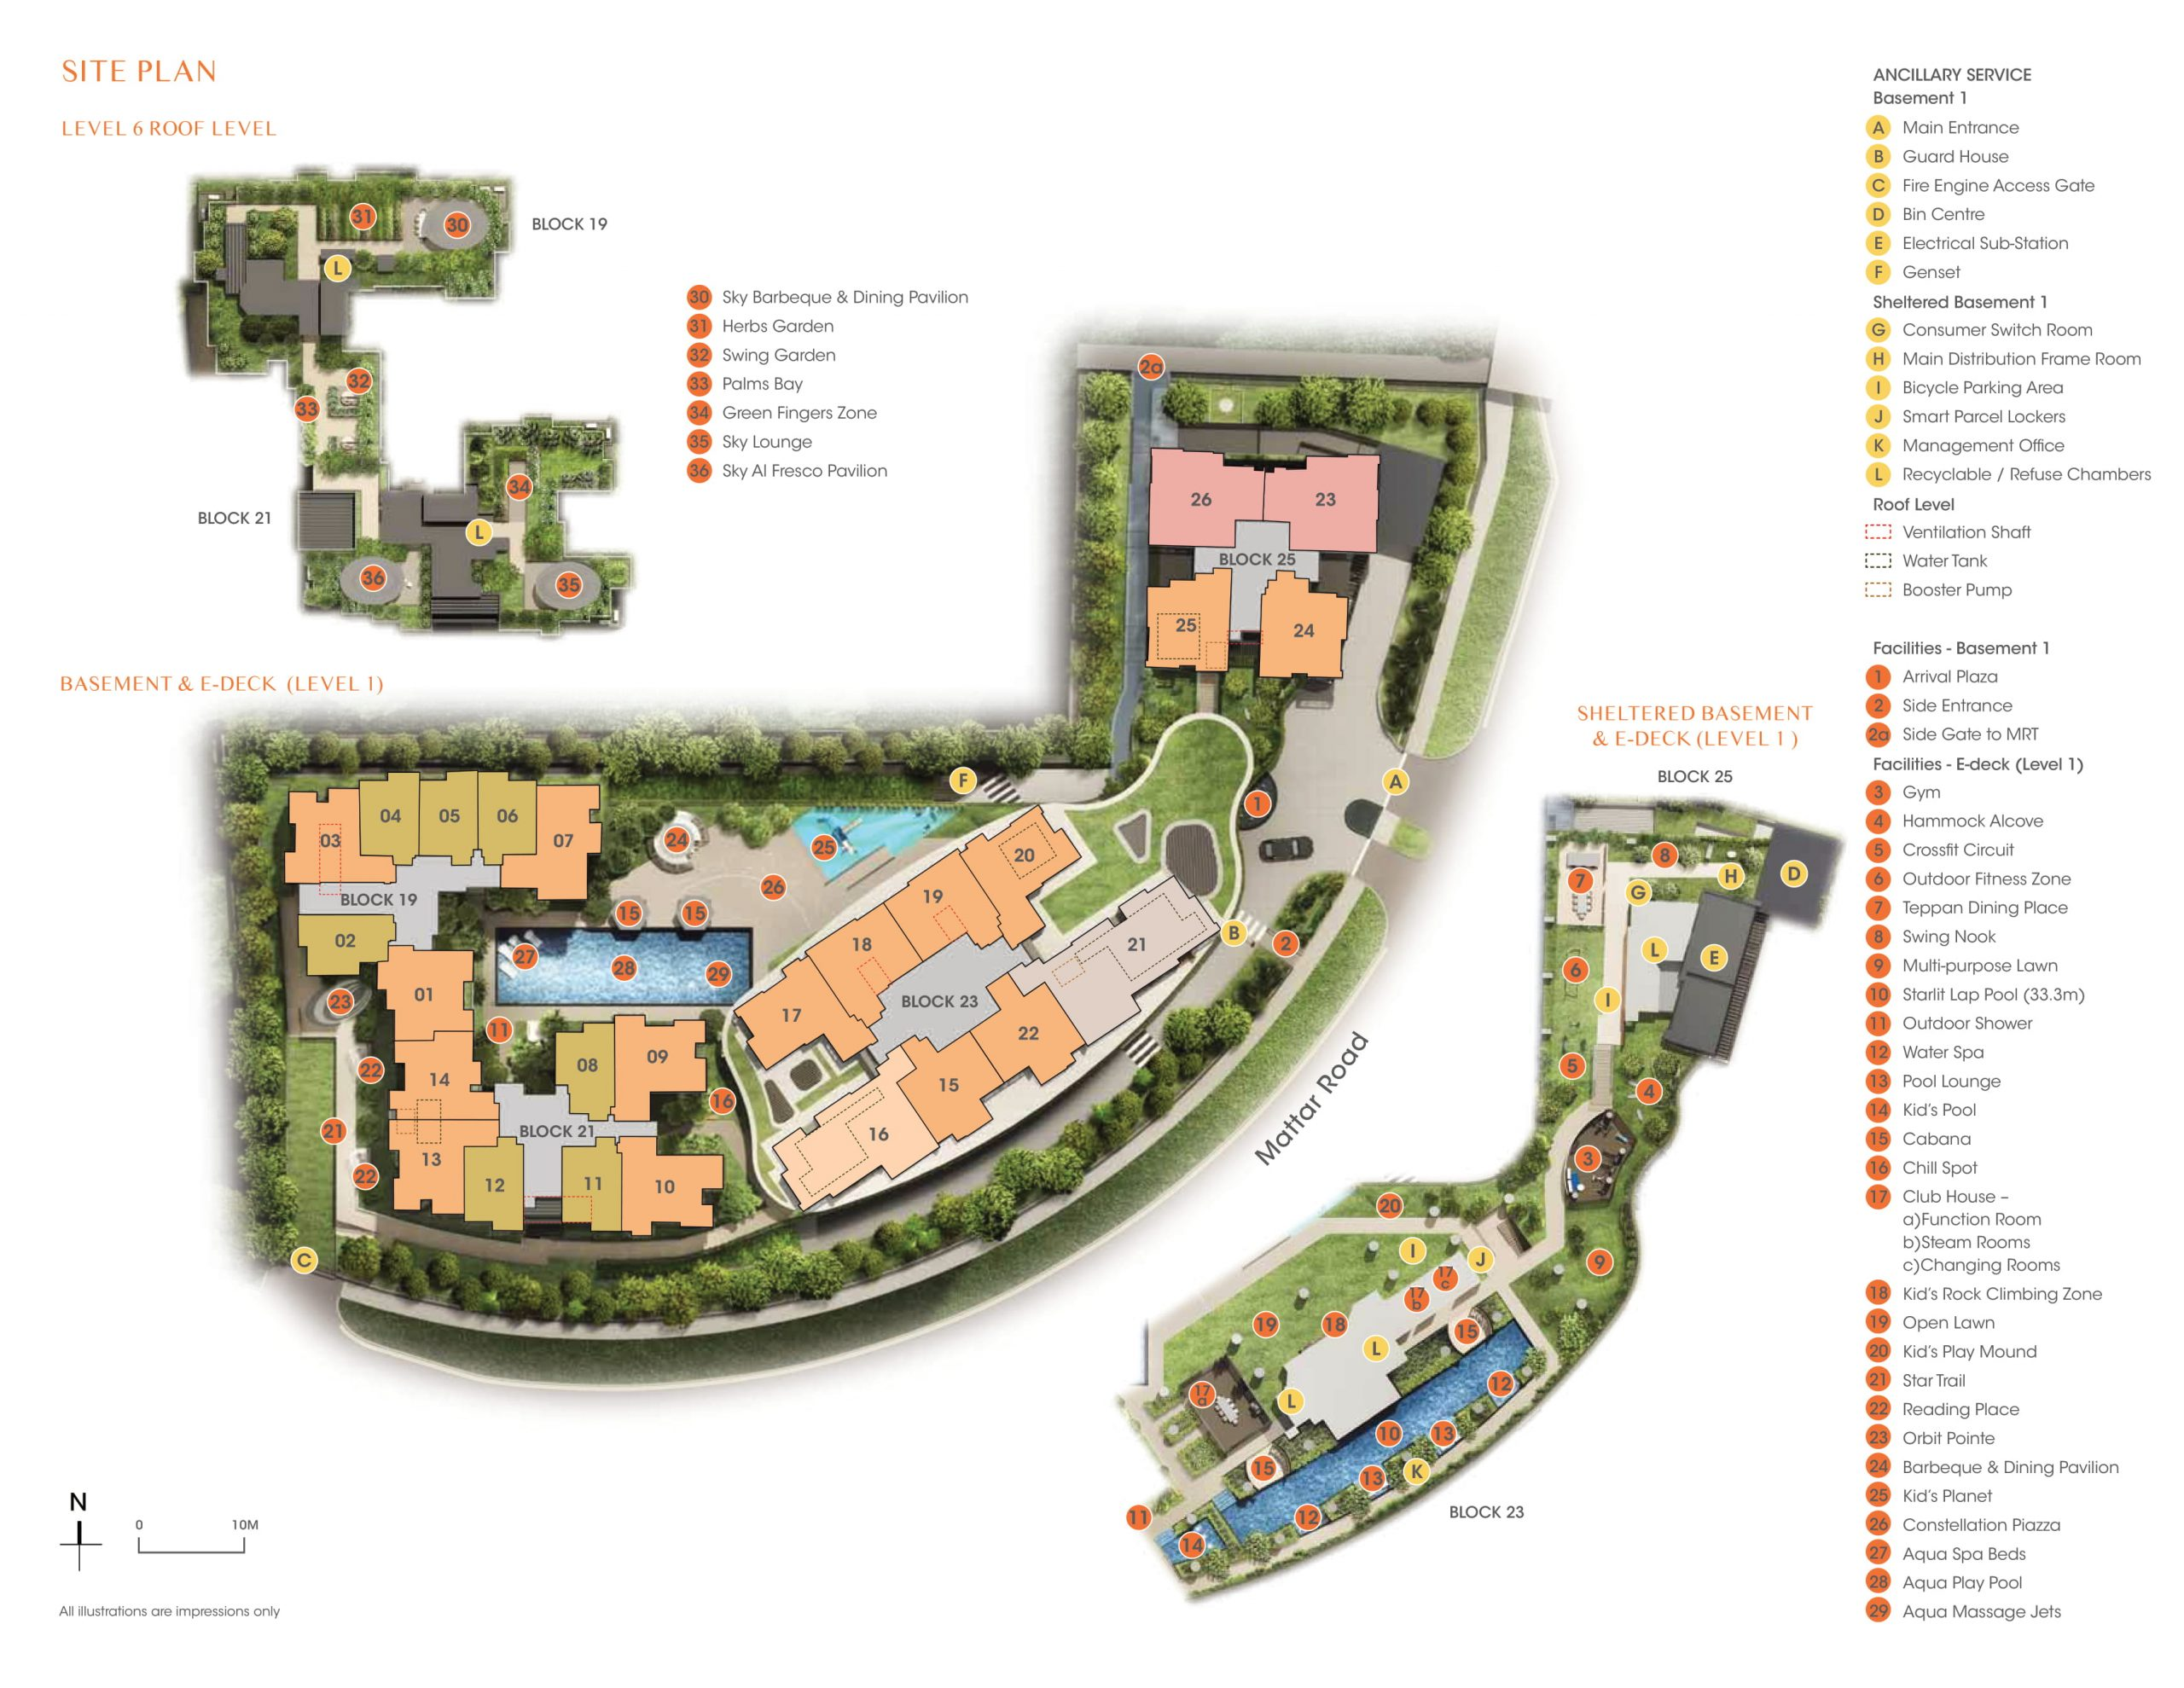 The Antares site plan and facilities